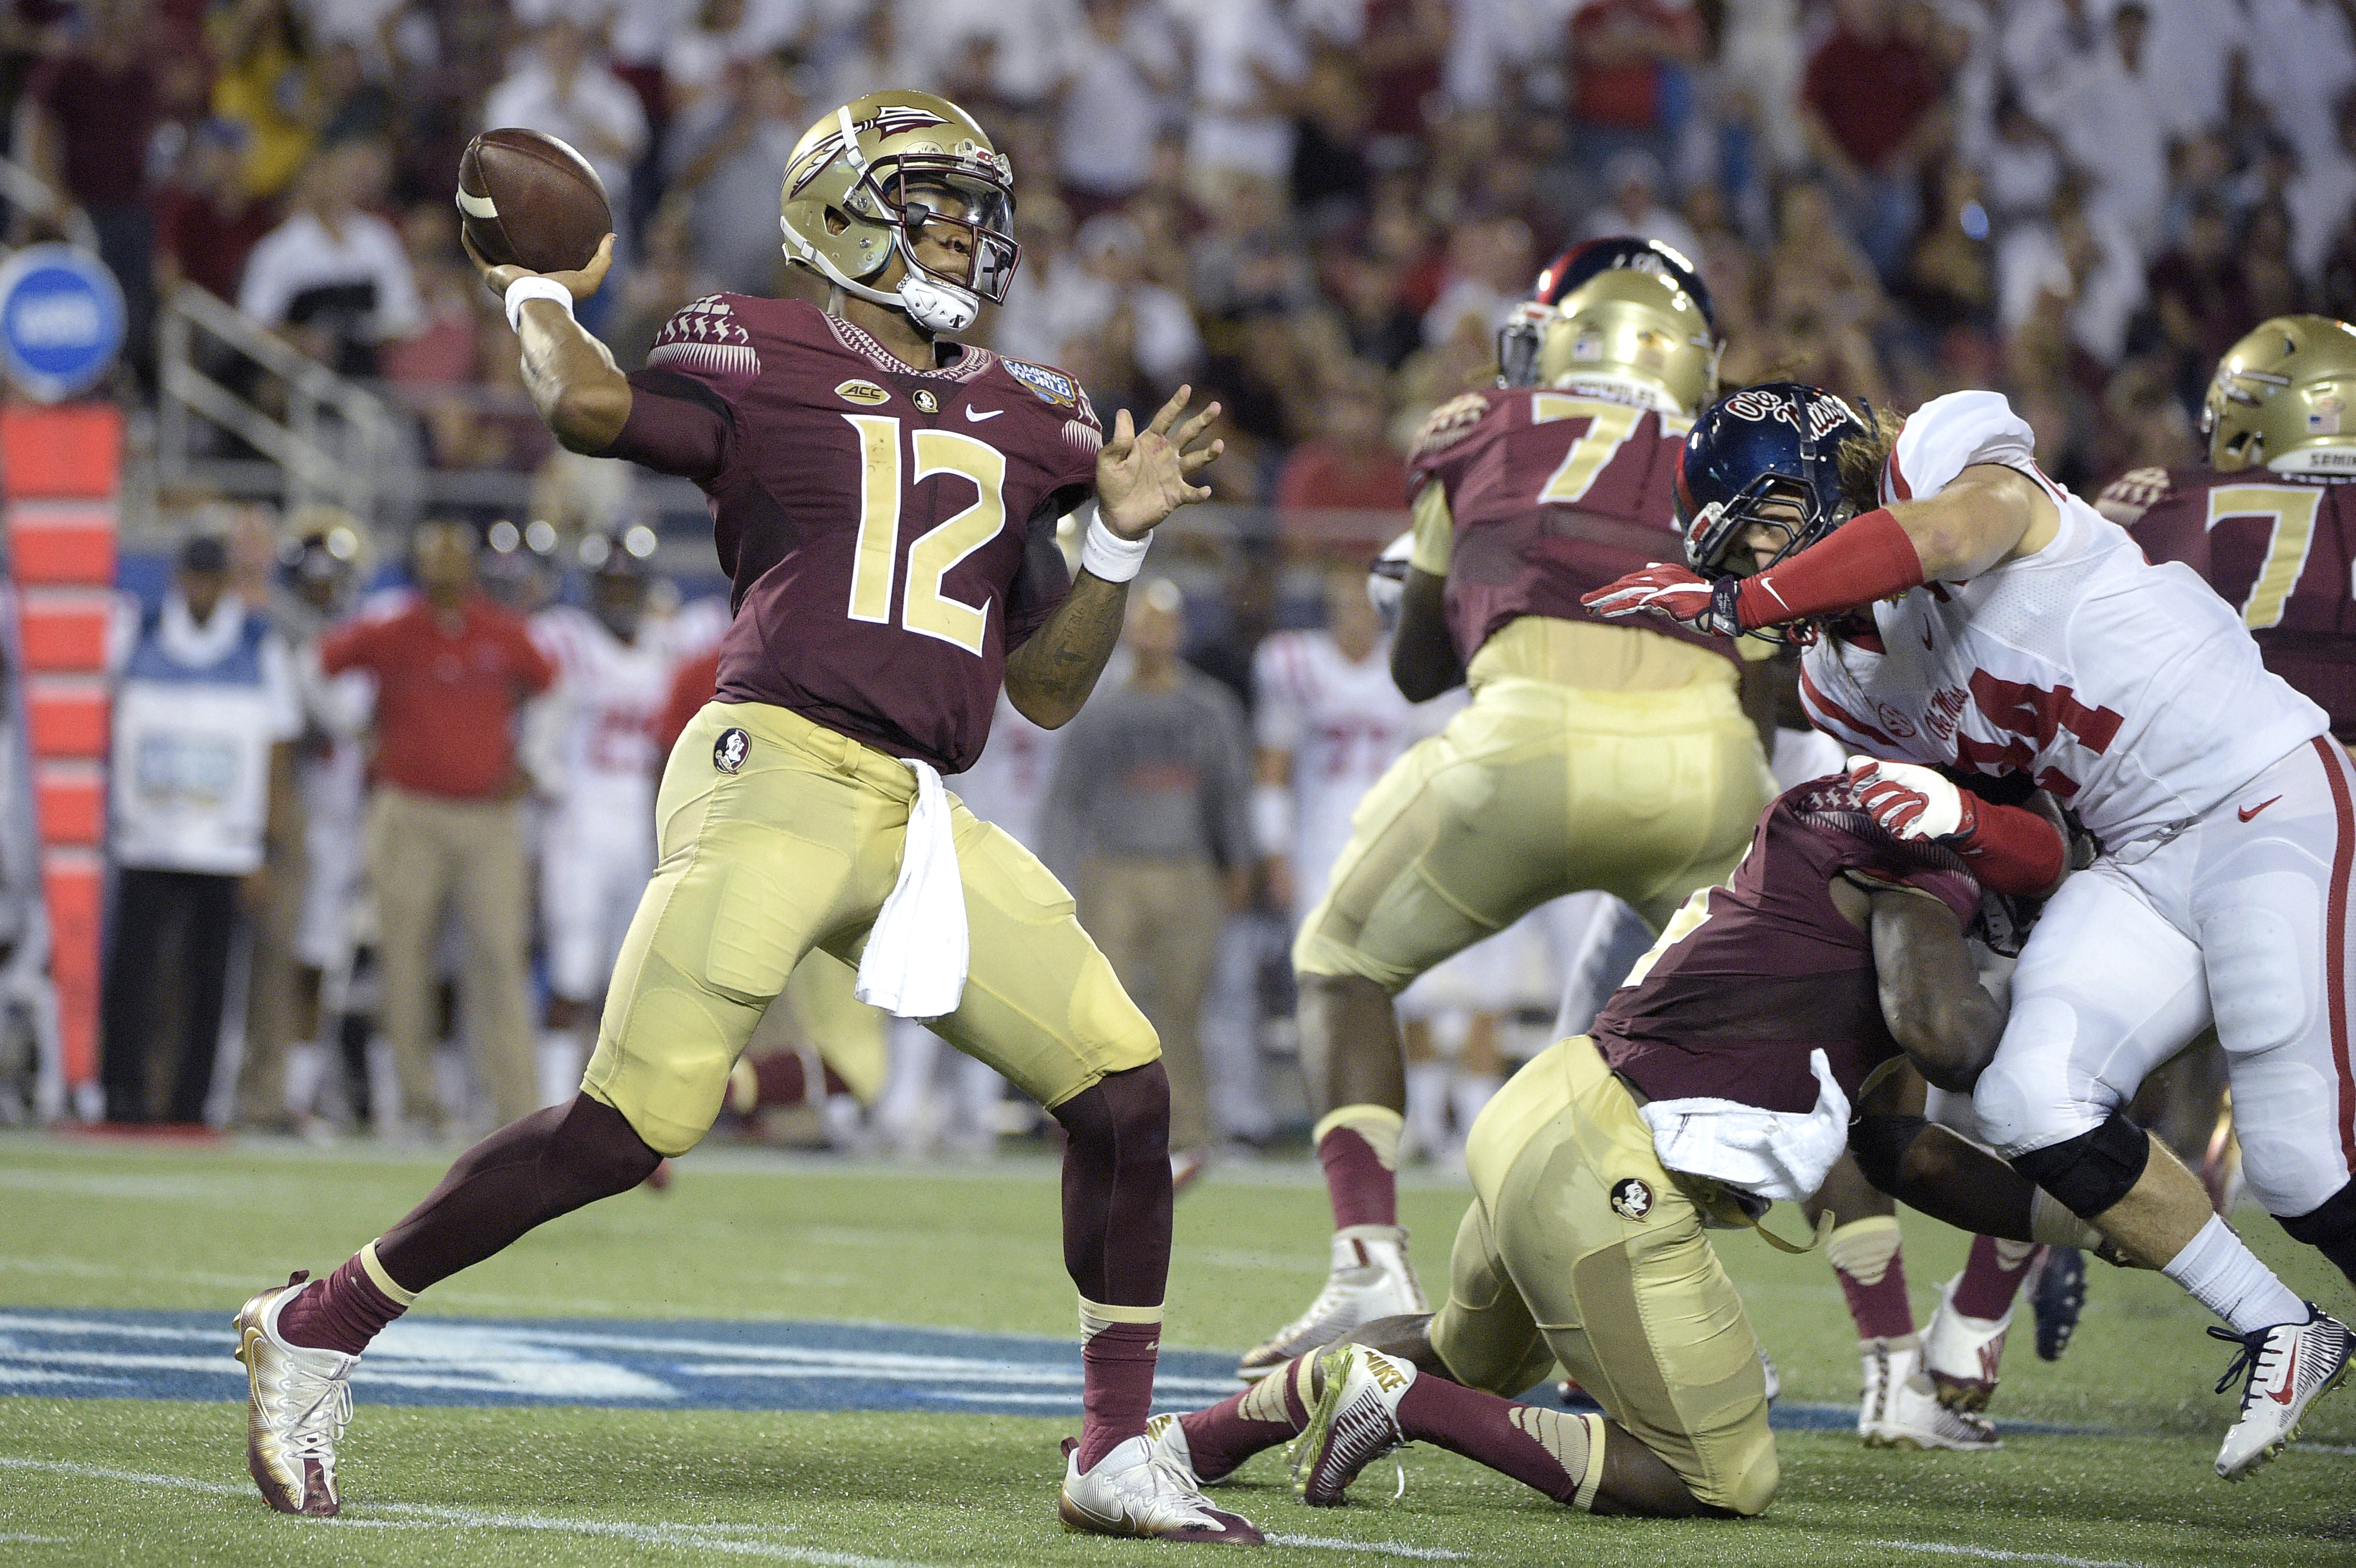 Florida State quarterback Deondre Francois (12) throws a pass as he is rushed by Mississippi linebacker Alex Ashlock (44) during the first half of an NCAA college football game in Orlando, Fla., Monday, Sept. 5, 2016.(AP Photo/Phelan M. Ebenhack)